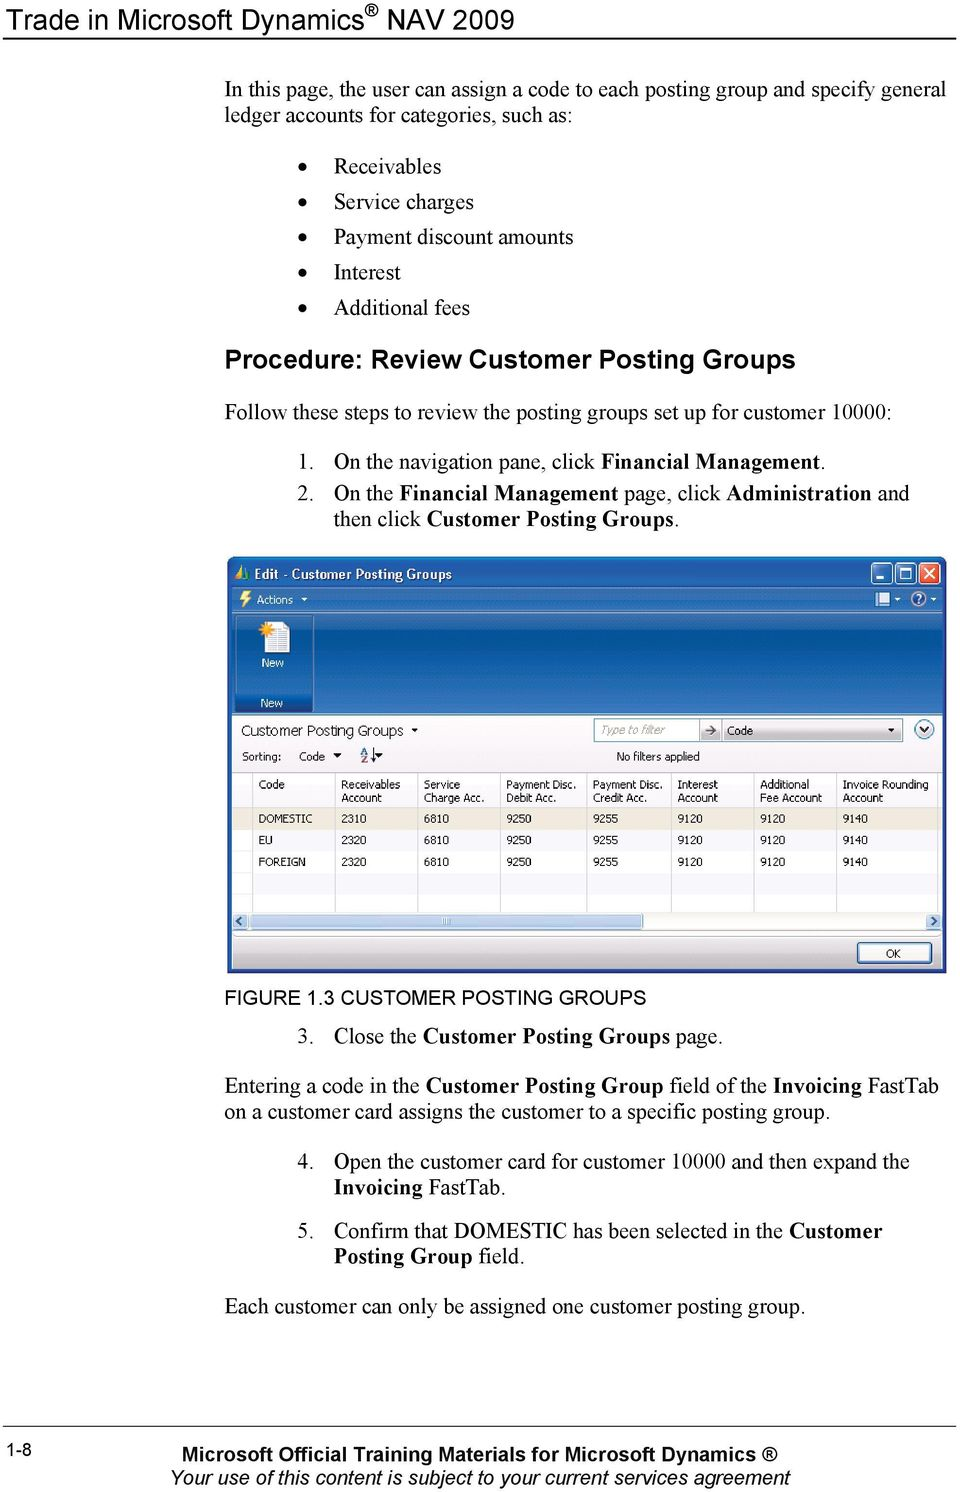 On the navigation pane, click Financial Management. 2. On the Financial Management page, click Administration and then click Customer Posting Groups. FIGURE 1.3 CUSTOMER POSTING GROUPS 3.